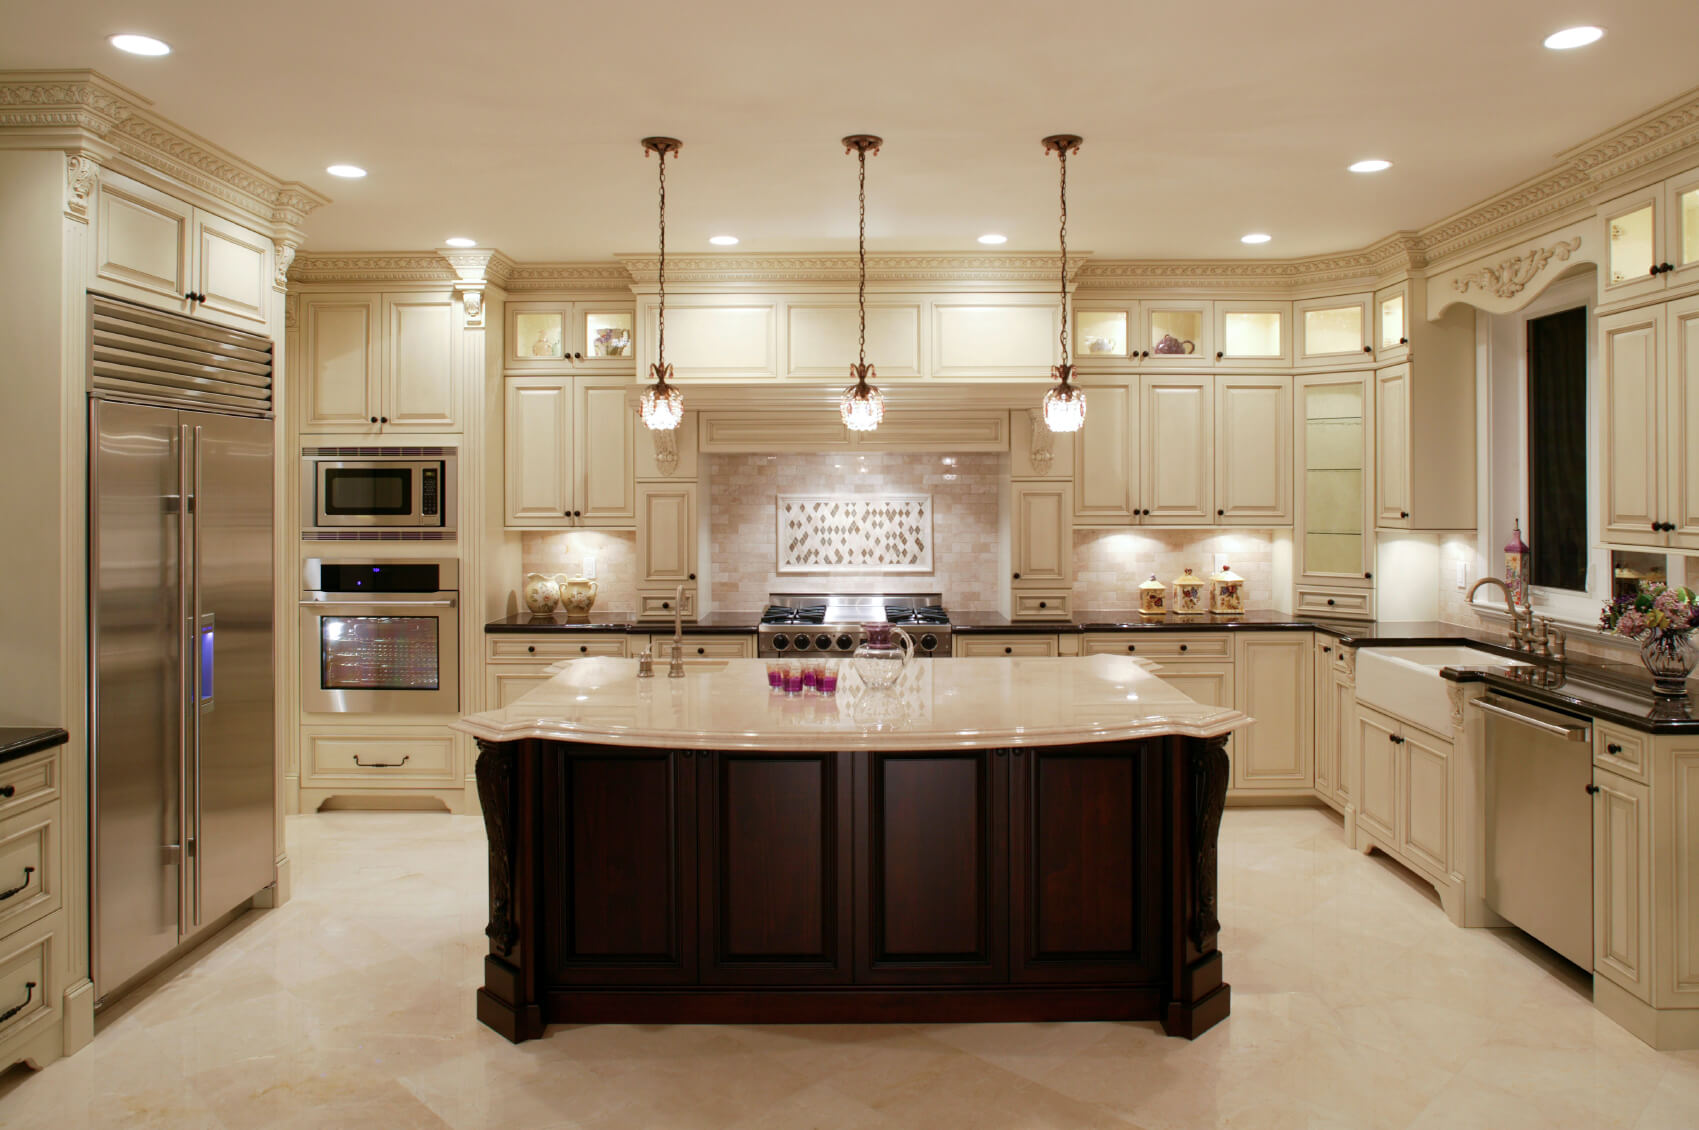 Small Kitchen Design Layout Ideas small kitchen layouts Kitchen Designs Layouts